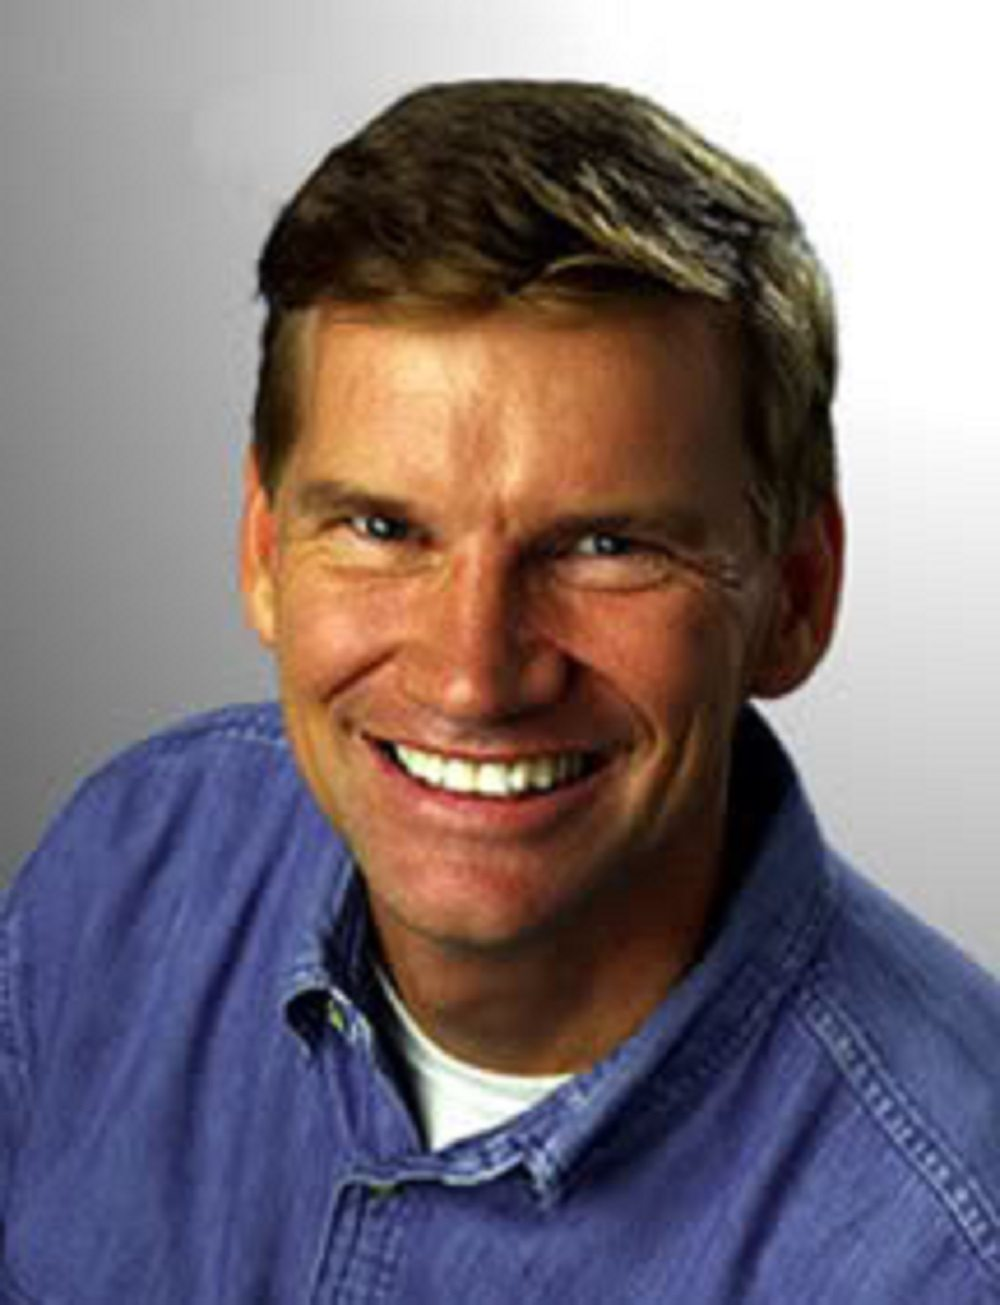 Ted Haggard, anti-gay activist